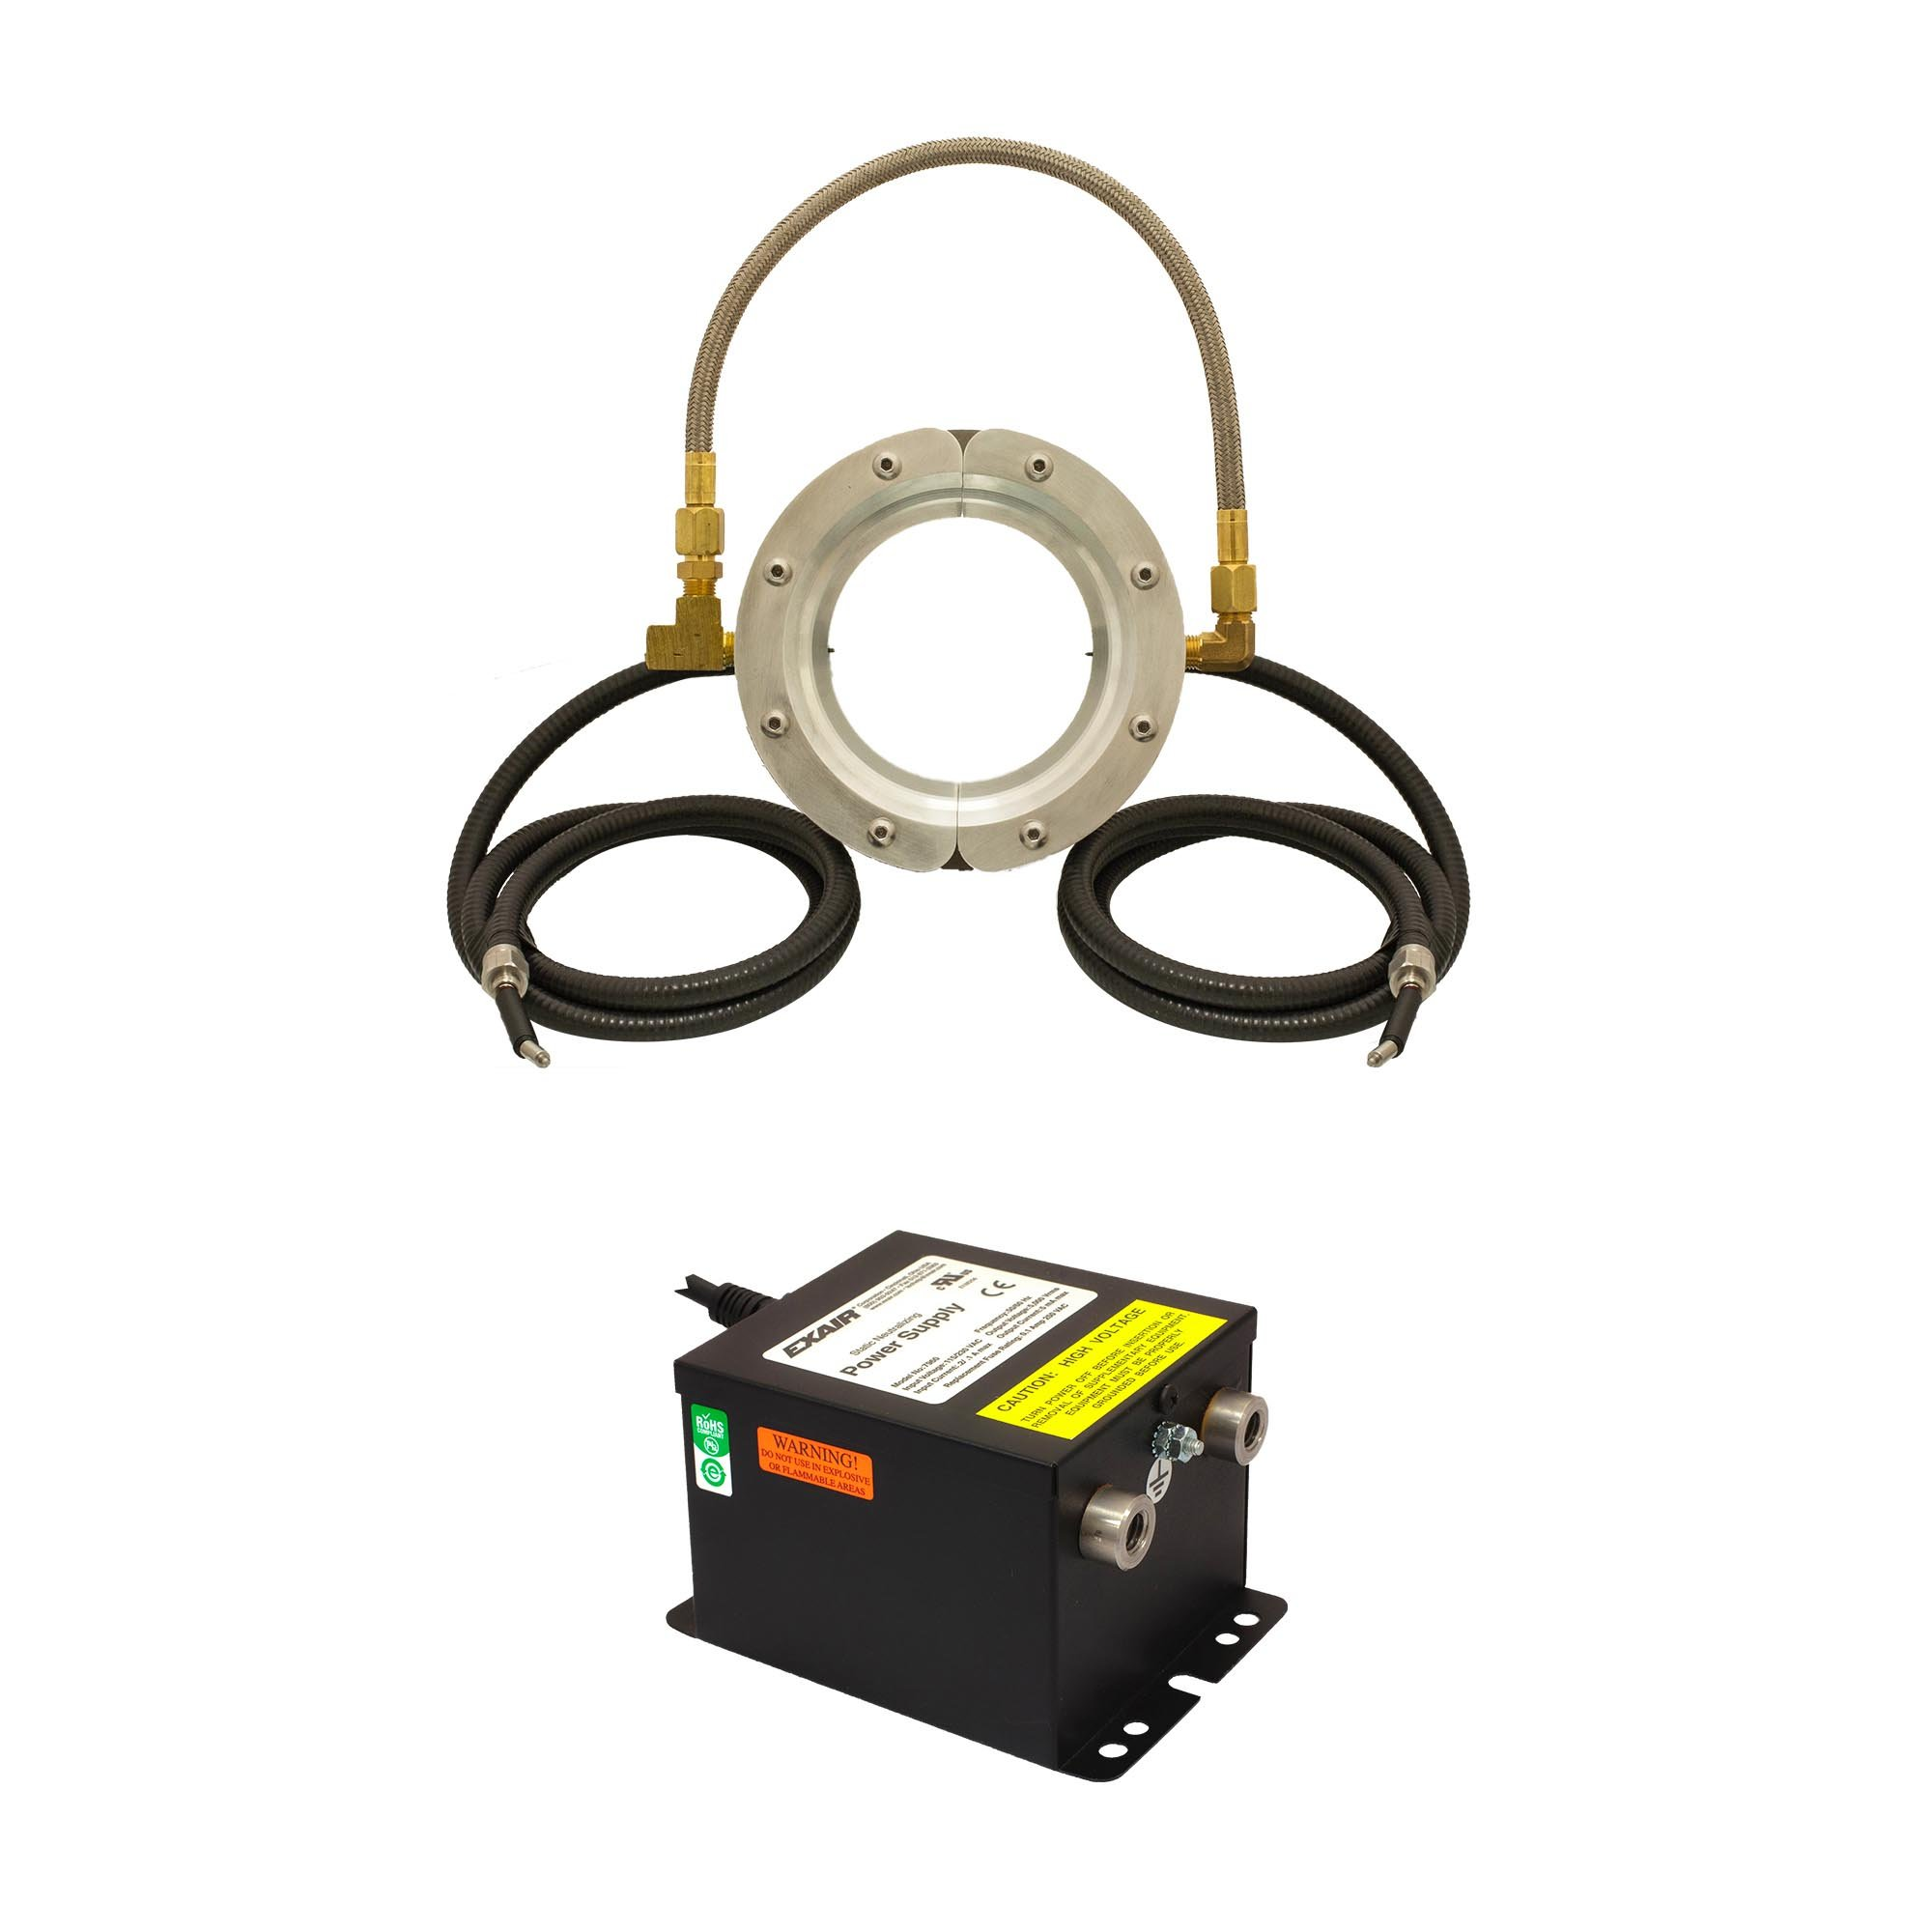 The Super Ion Air Wipe System includes the Super Ion Air Wipe and Power Supply